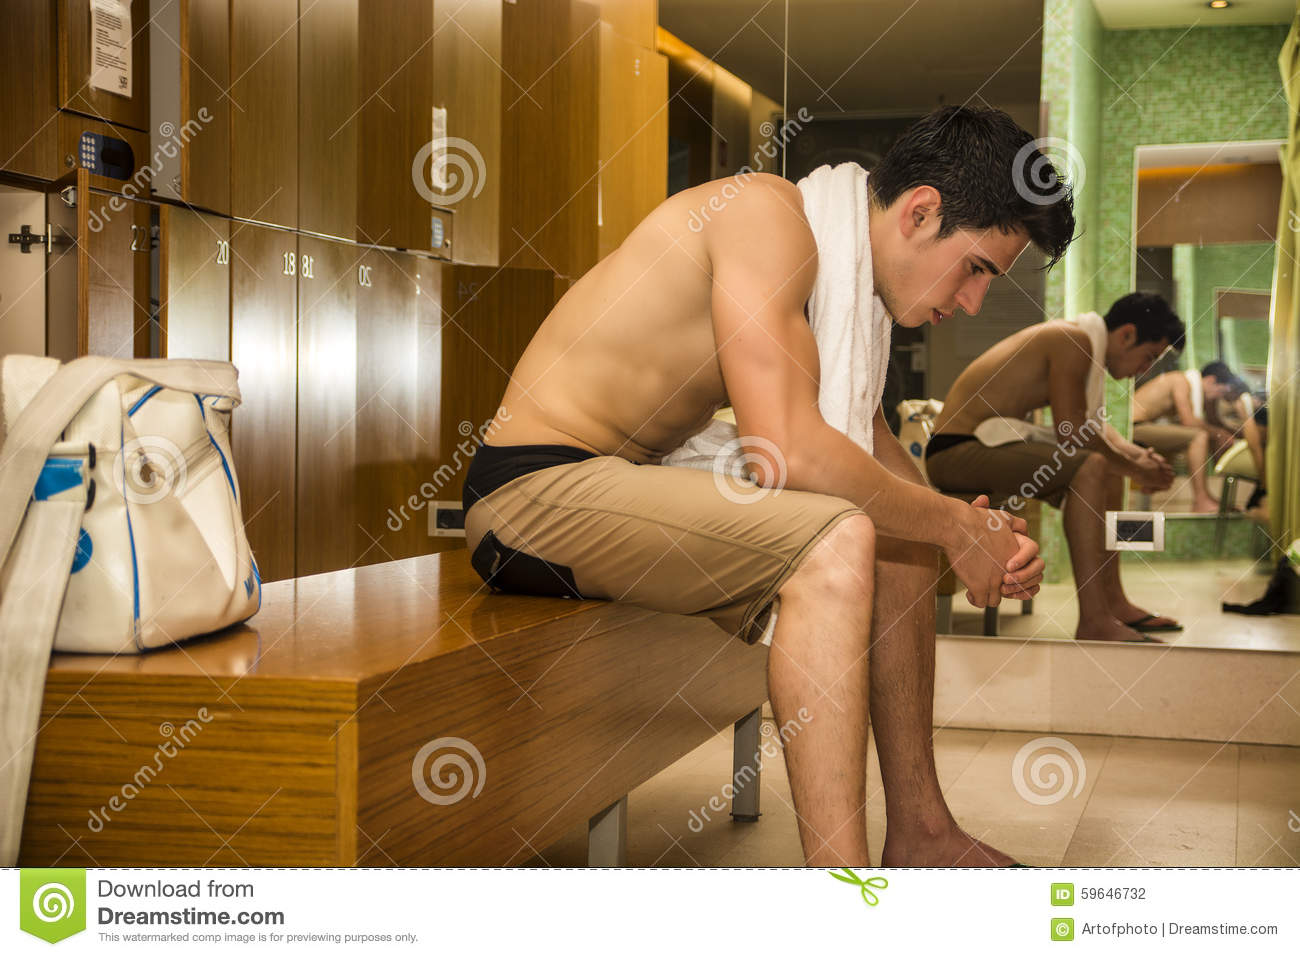 Male Athlete Resting On Bench In Gyms Locker Room Stock